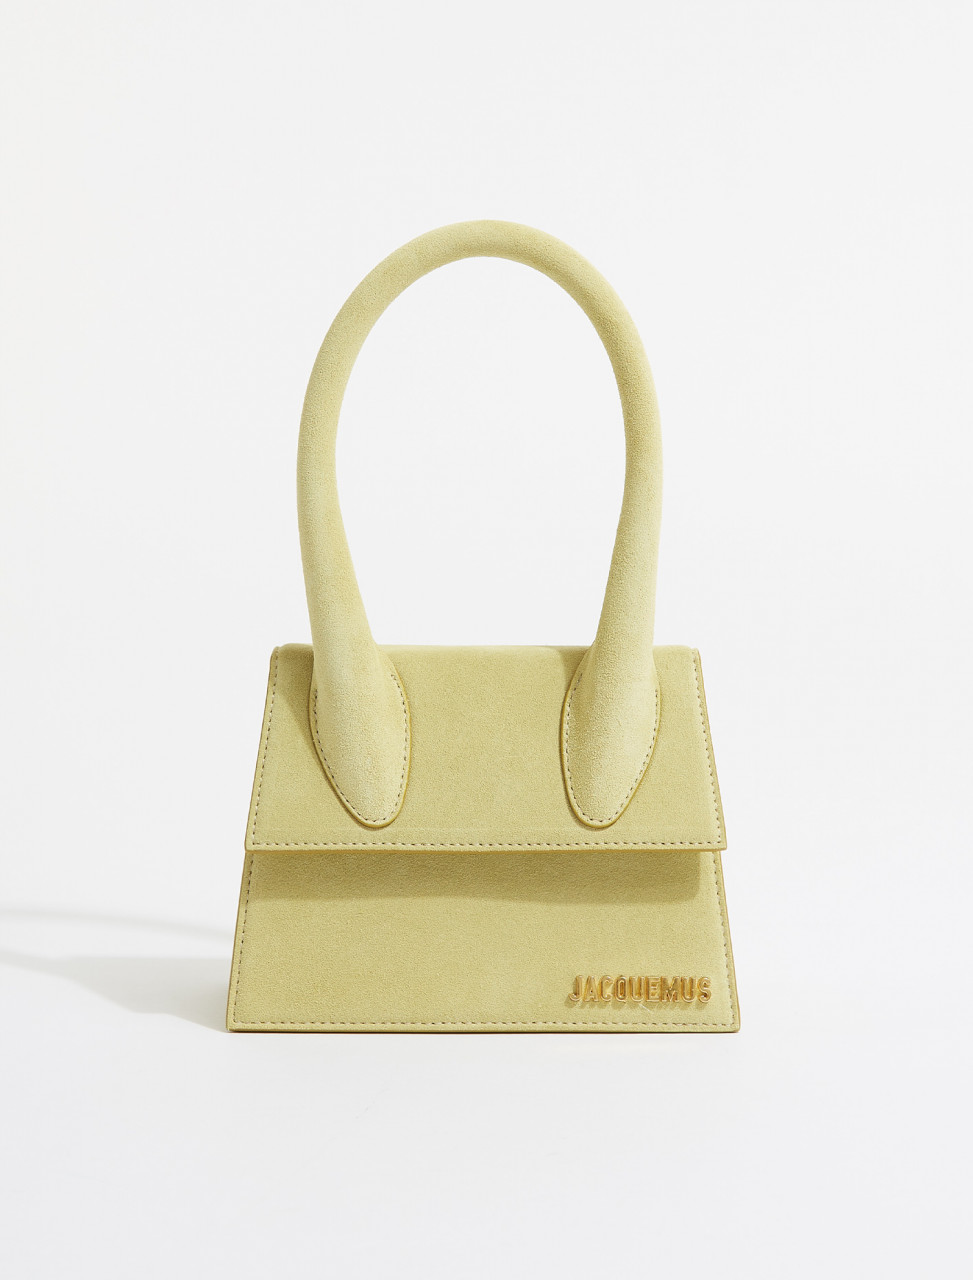 211BA02-211-302500 JACQUEMUS LE CHIQUITO MOYEN LIGHT GREEN